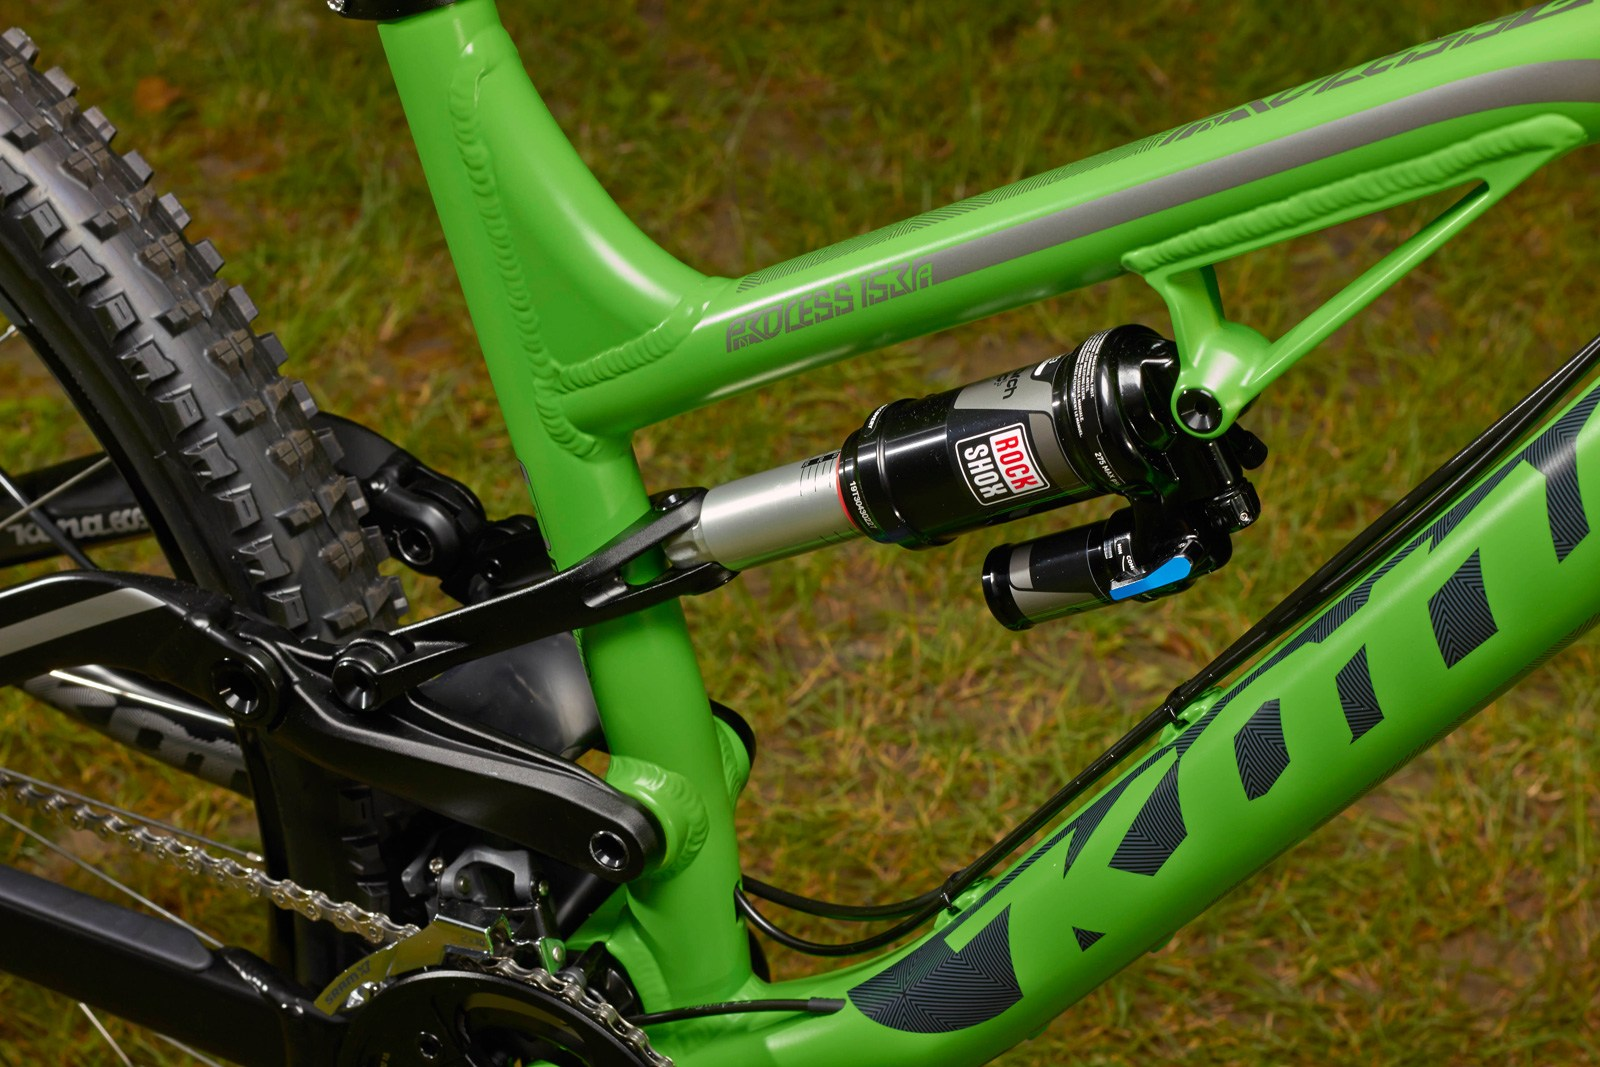 Knolly was the first company I saw using a linkage that straddles the seat tube. Specialized does as well. Kona did not opt for a Horst Link placement of their pivot despite the expiry of that patent on April 23rd 2013.